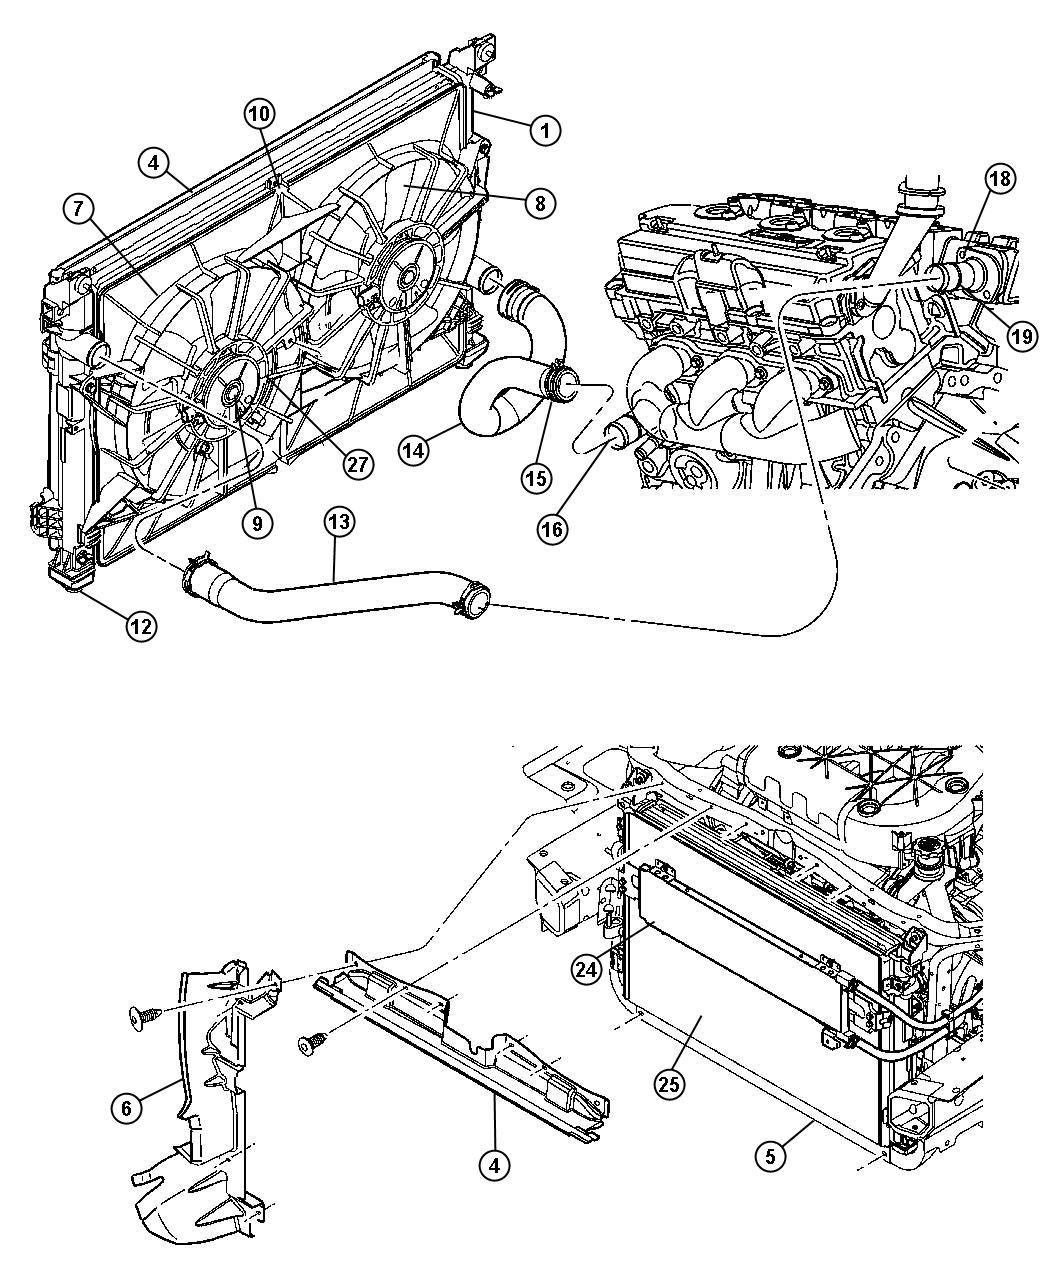 Dodge Caravan Engine Diagram